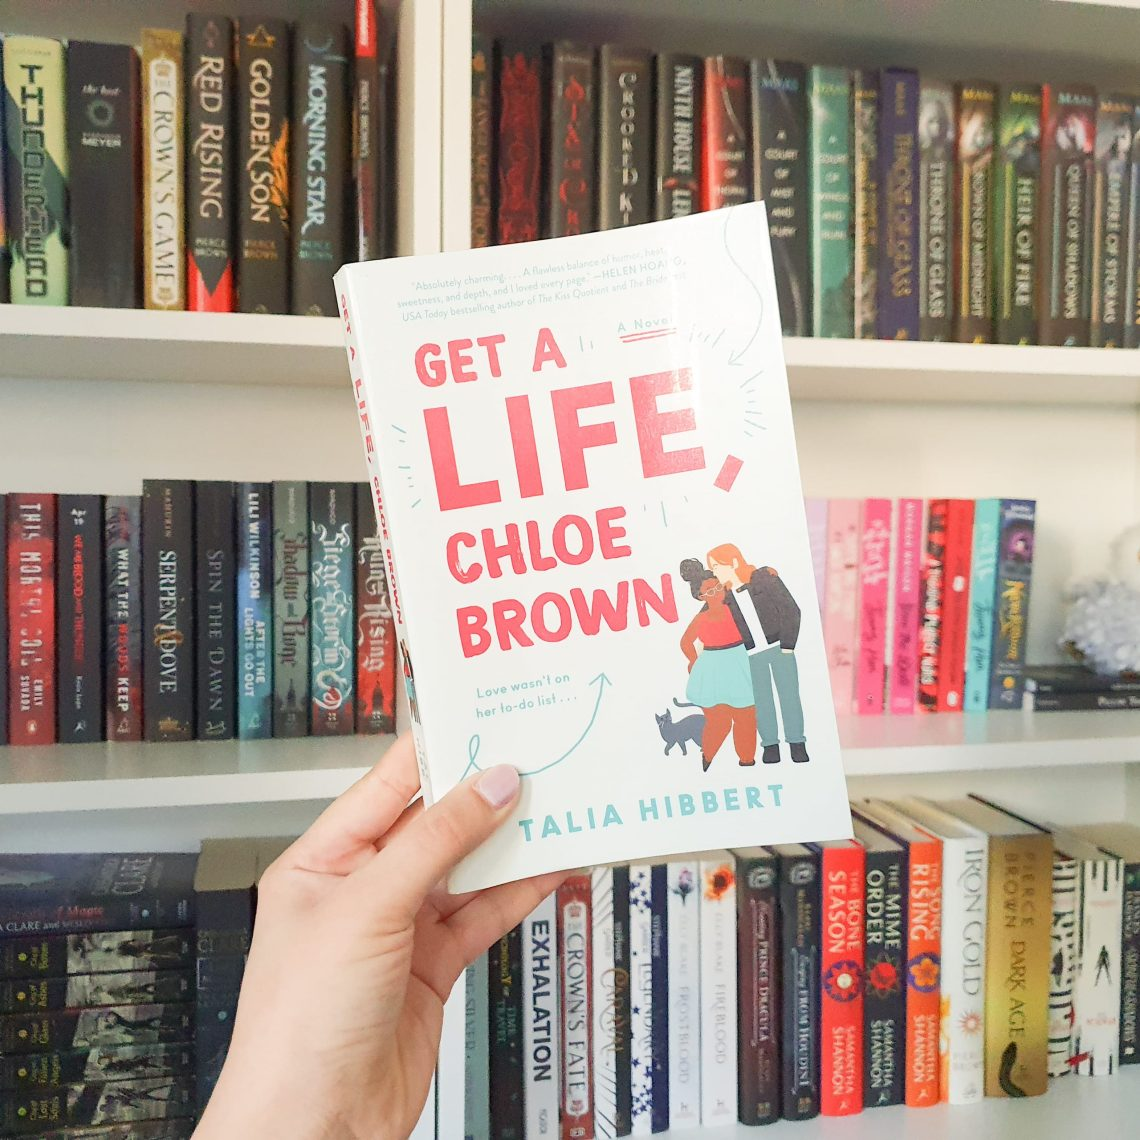 104429947 647966585931795 1679740108333828276 n scaled - Get A Life, Chloe Brown Book Review